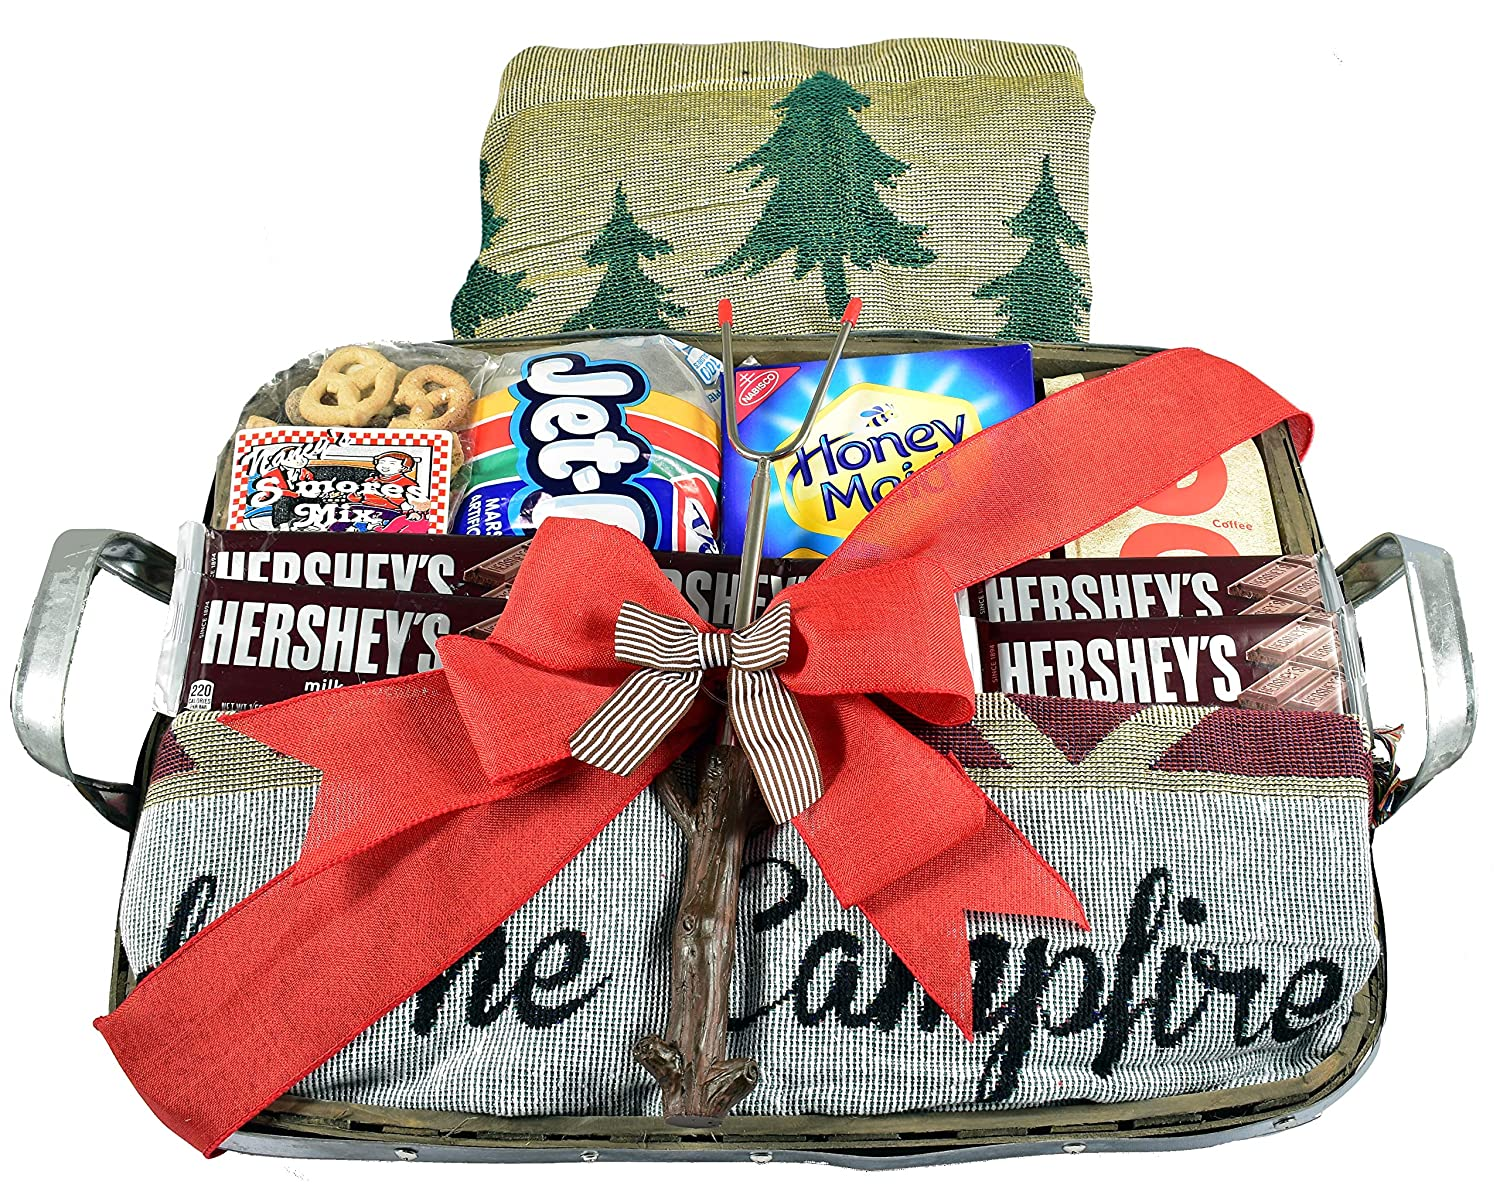 Gift Basket Village Campfire Christmas Basket with Winter Blanket and S'mores Making Kit in Designer Wood and Metal Serving Tray